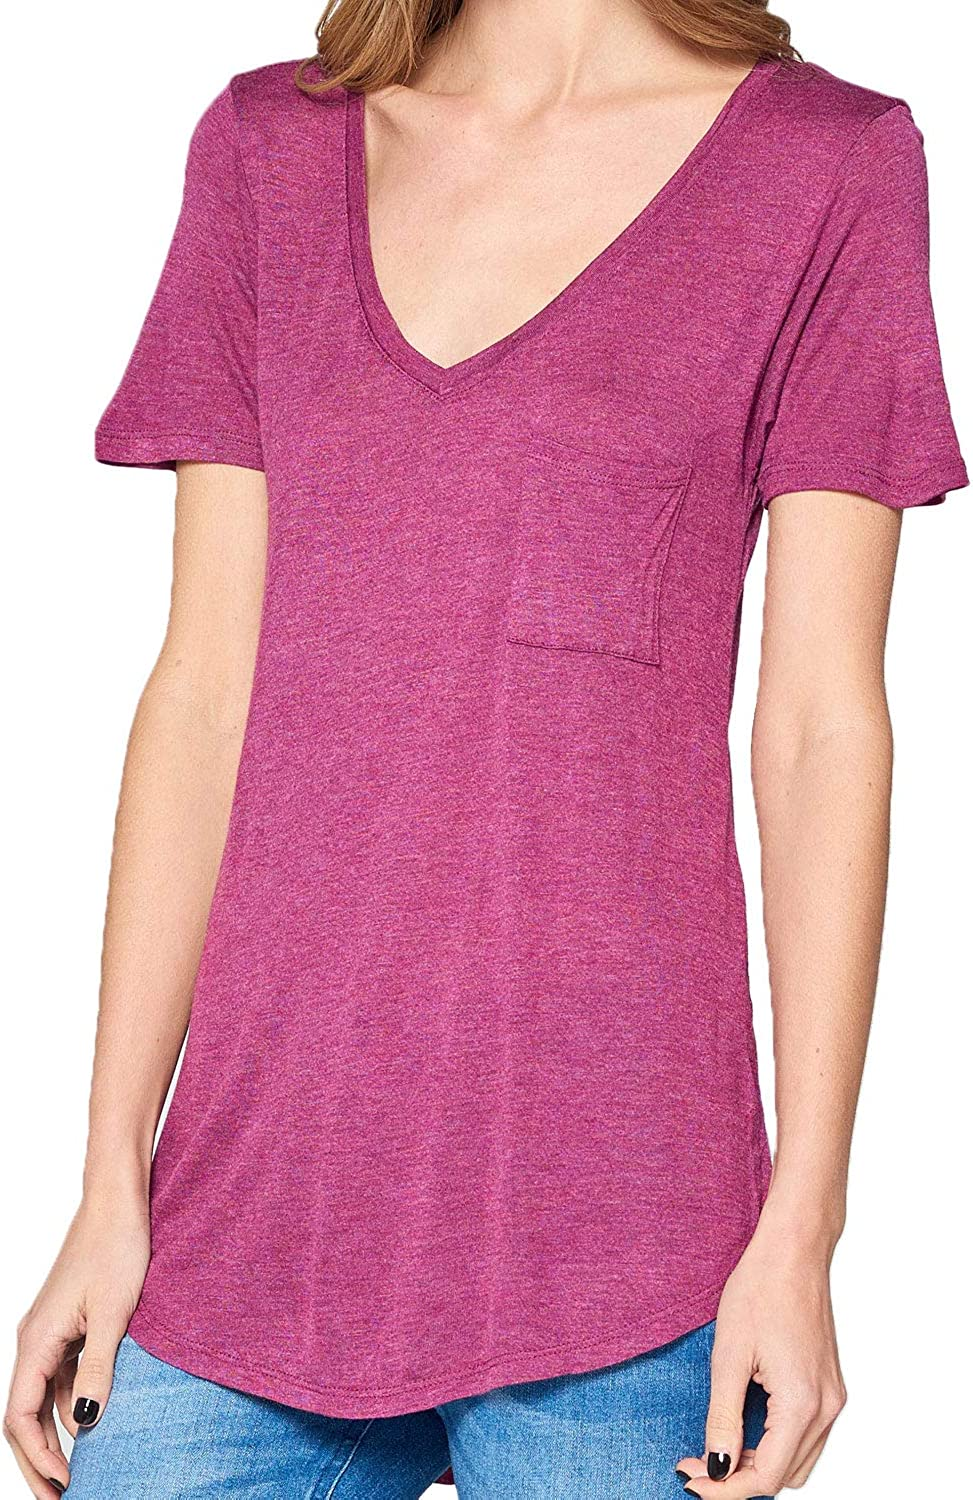 Tresics Womens VNeck Boyfriend T with Front Pocket and Low Shirt Tail TShirt